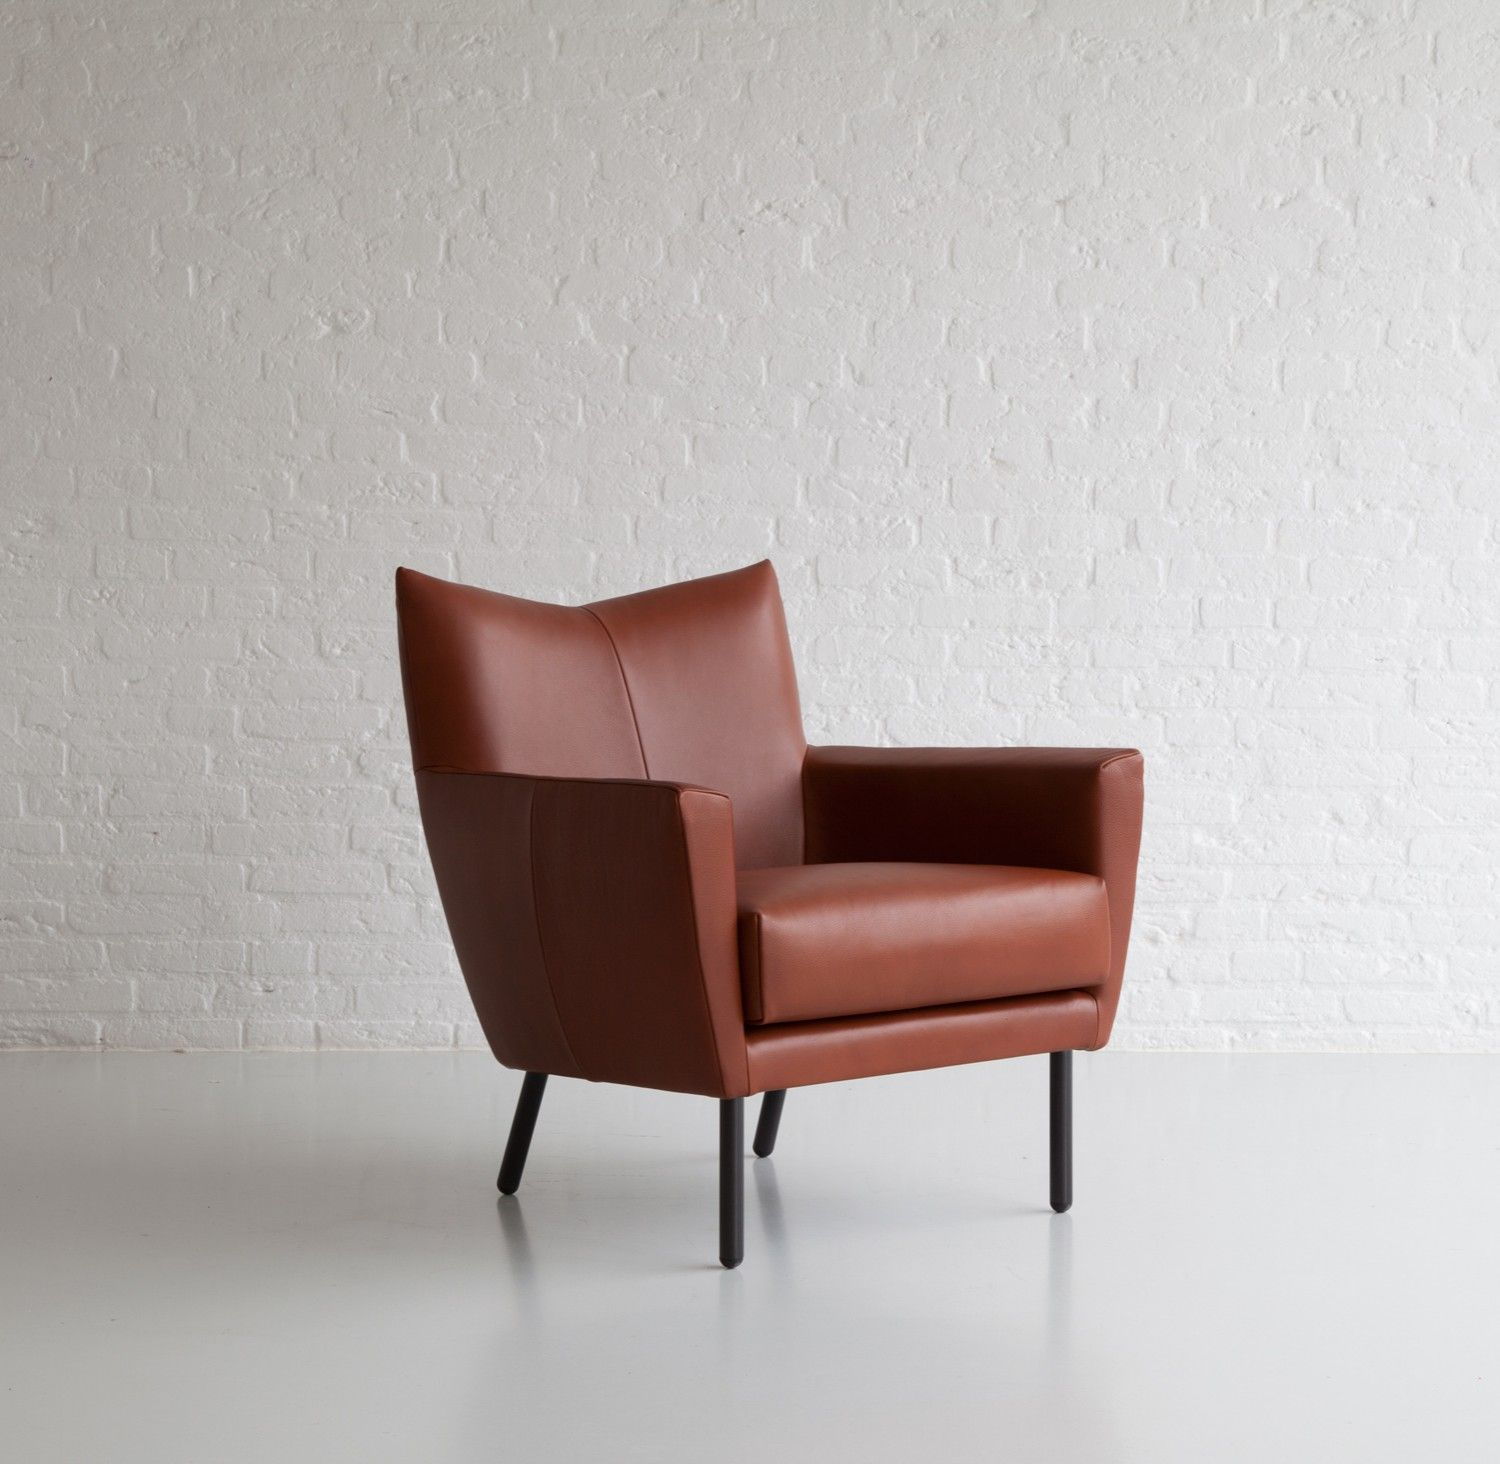 Toma Design on Stock Chairs